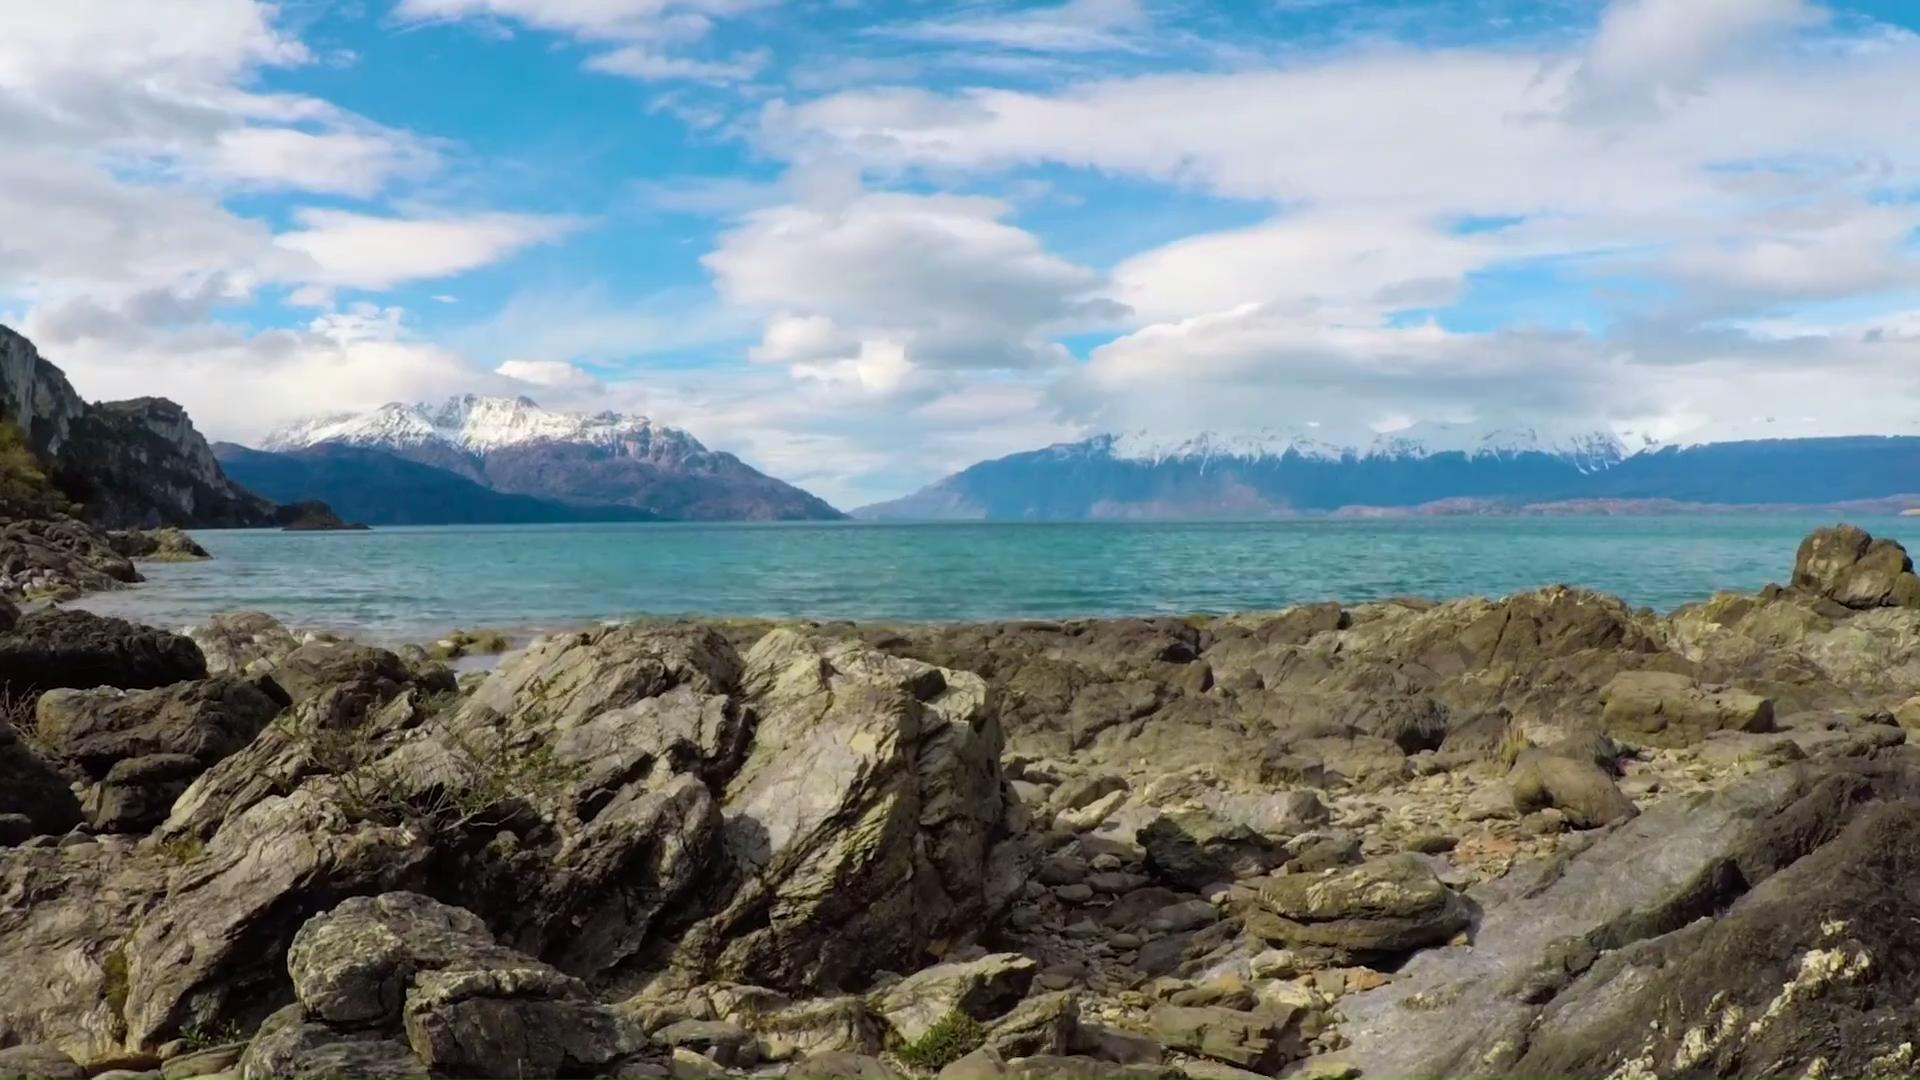 Chile's epic Route of Parks is now open - Lonely Planet